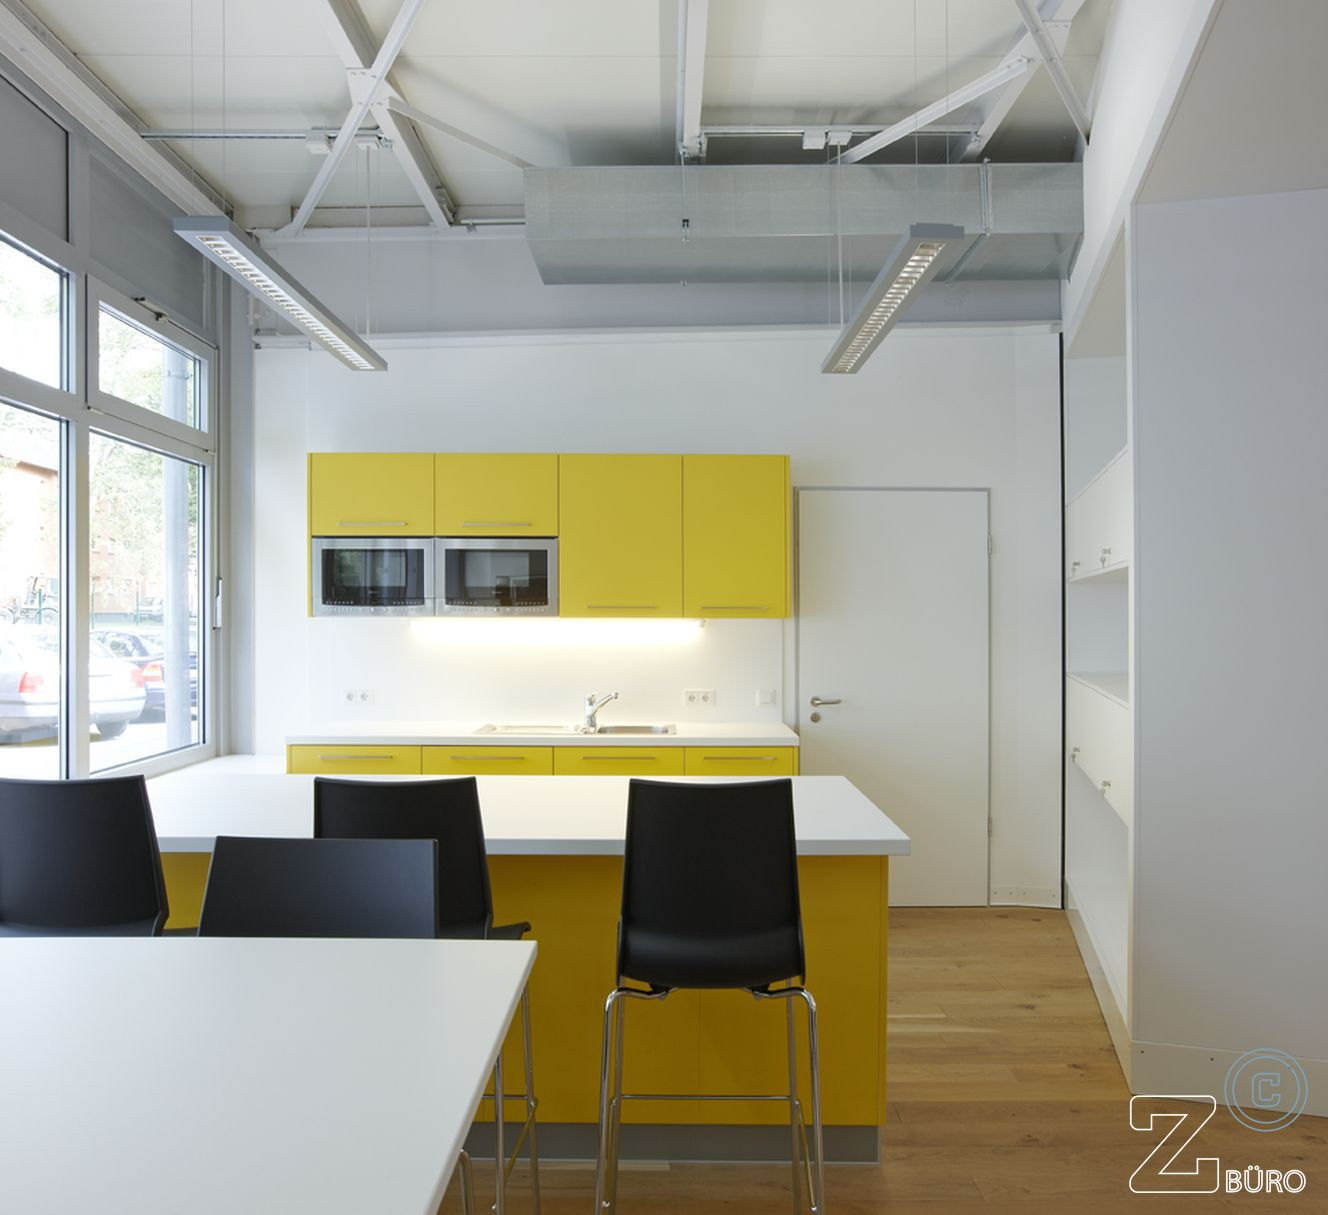 Design teeküche büro  Teeküchen Design #Teeküche #betteratwork #design #interiordesign ...